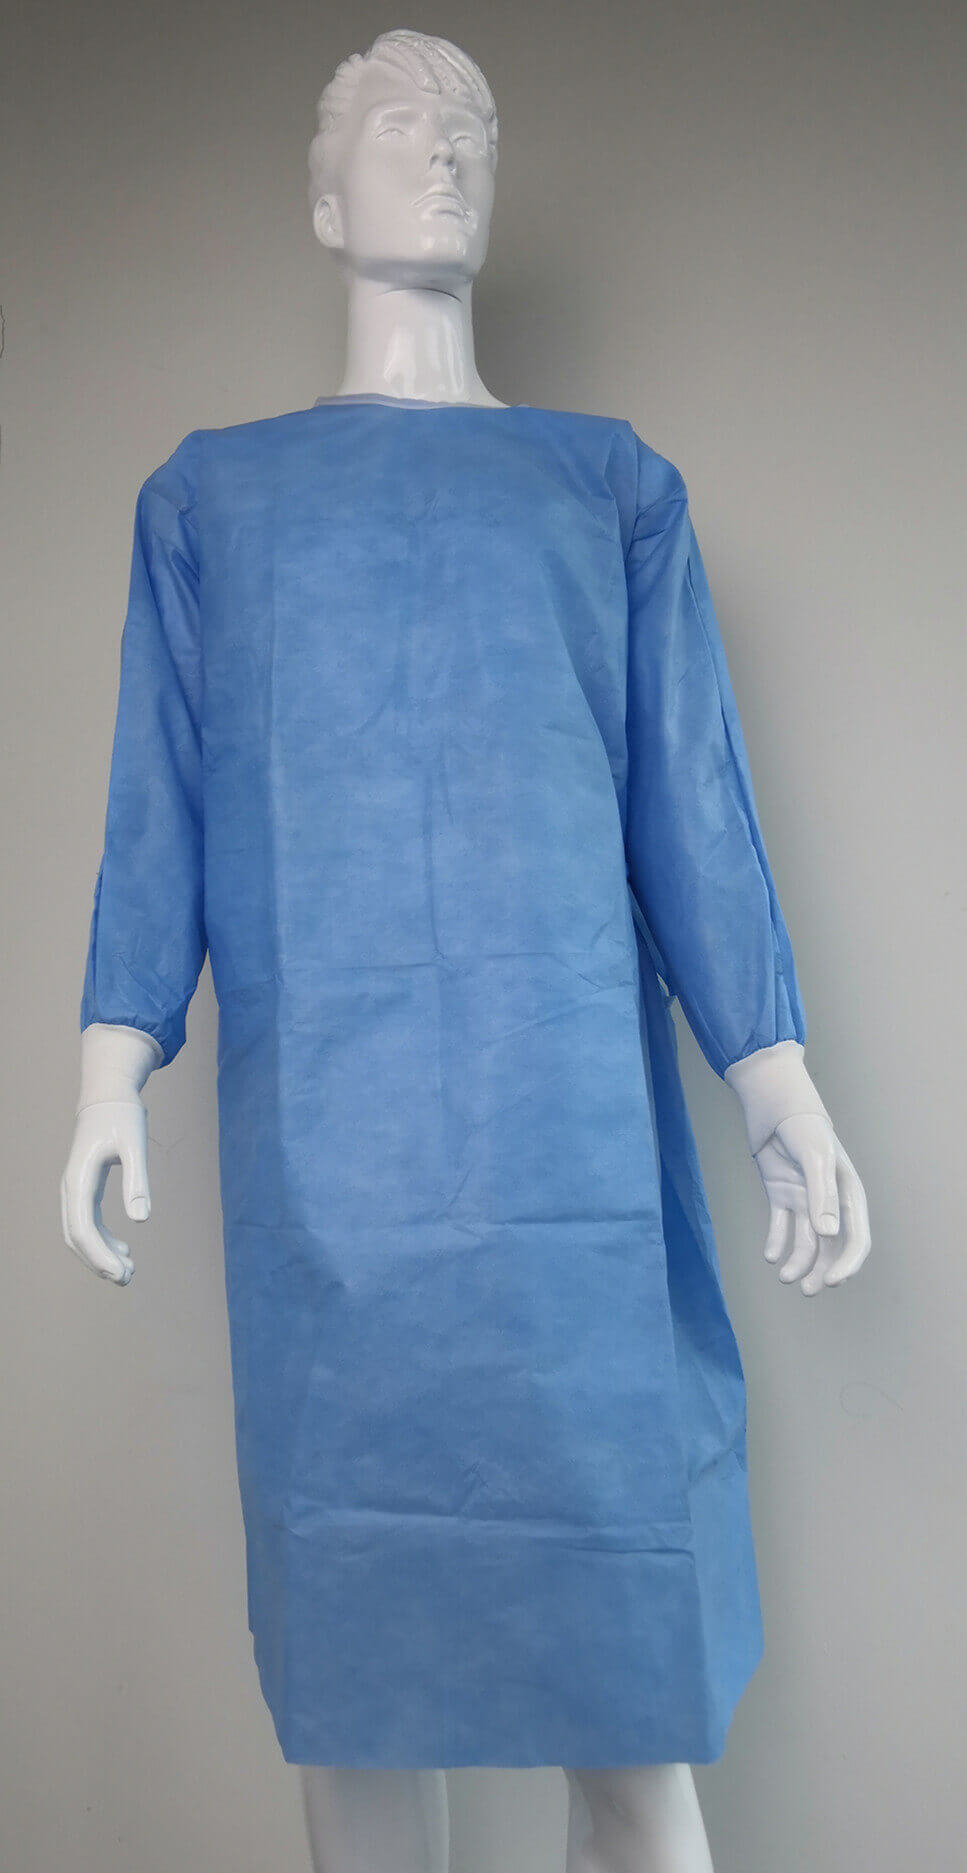 reinforced surgical gown for hospital surgery